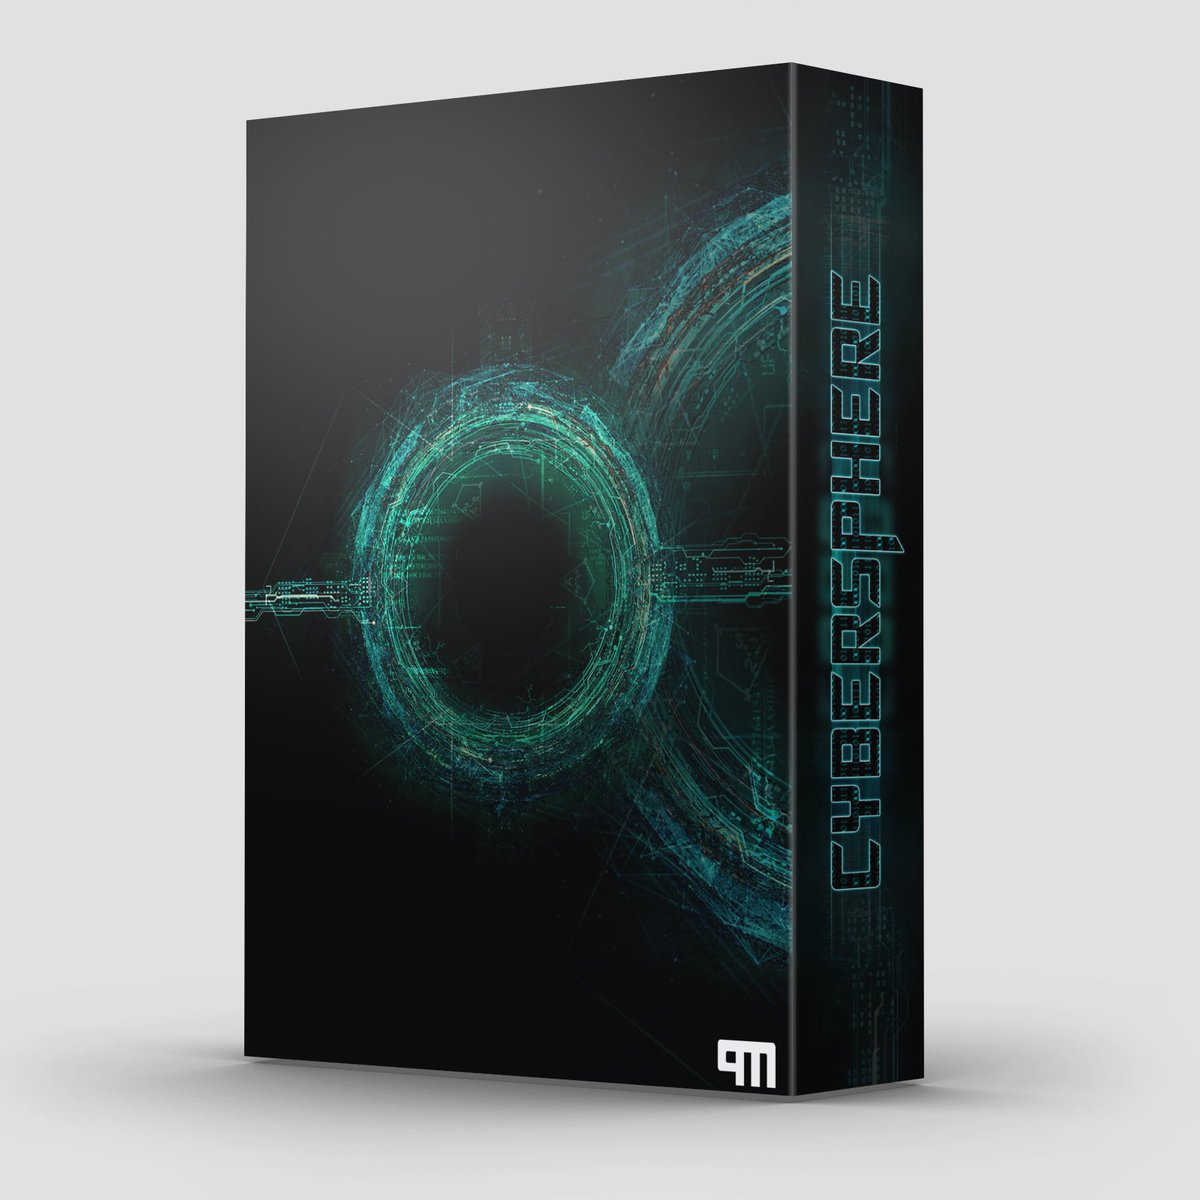 New #sfx library CYBERSPHERE  http://www. philmichalski.com/fx-store/#/cyb ersphere/ &nbsp; …  #sounddesign #gameaudio #gamedev #filmmaking<br>http://pic.twitter.com/cAwJQVv6fA